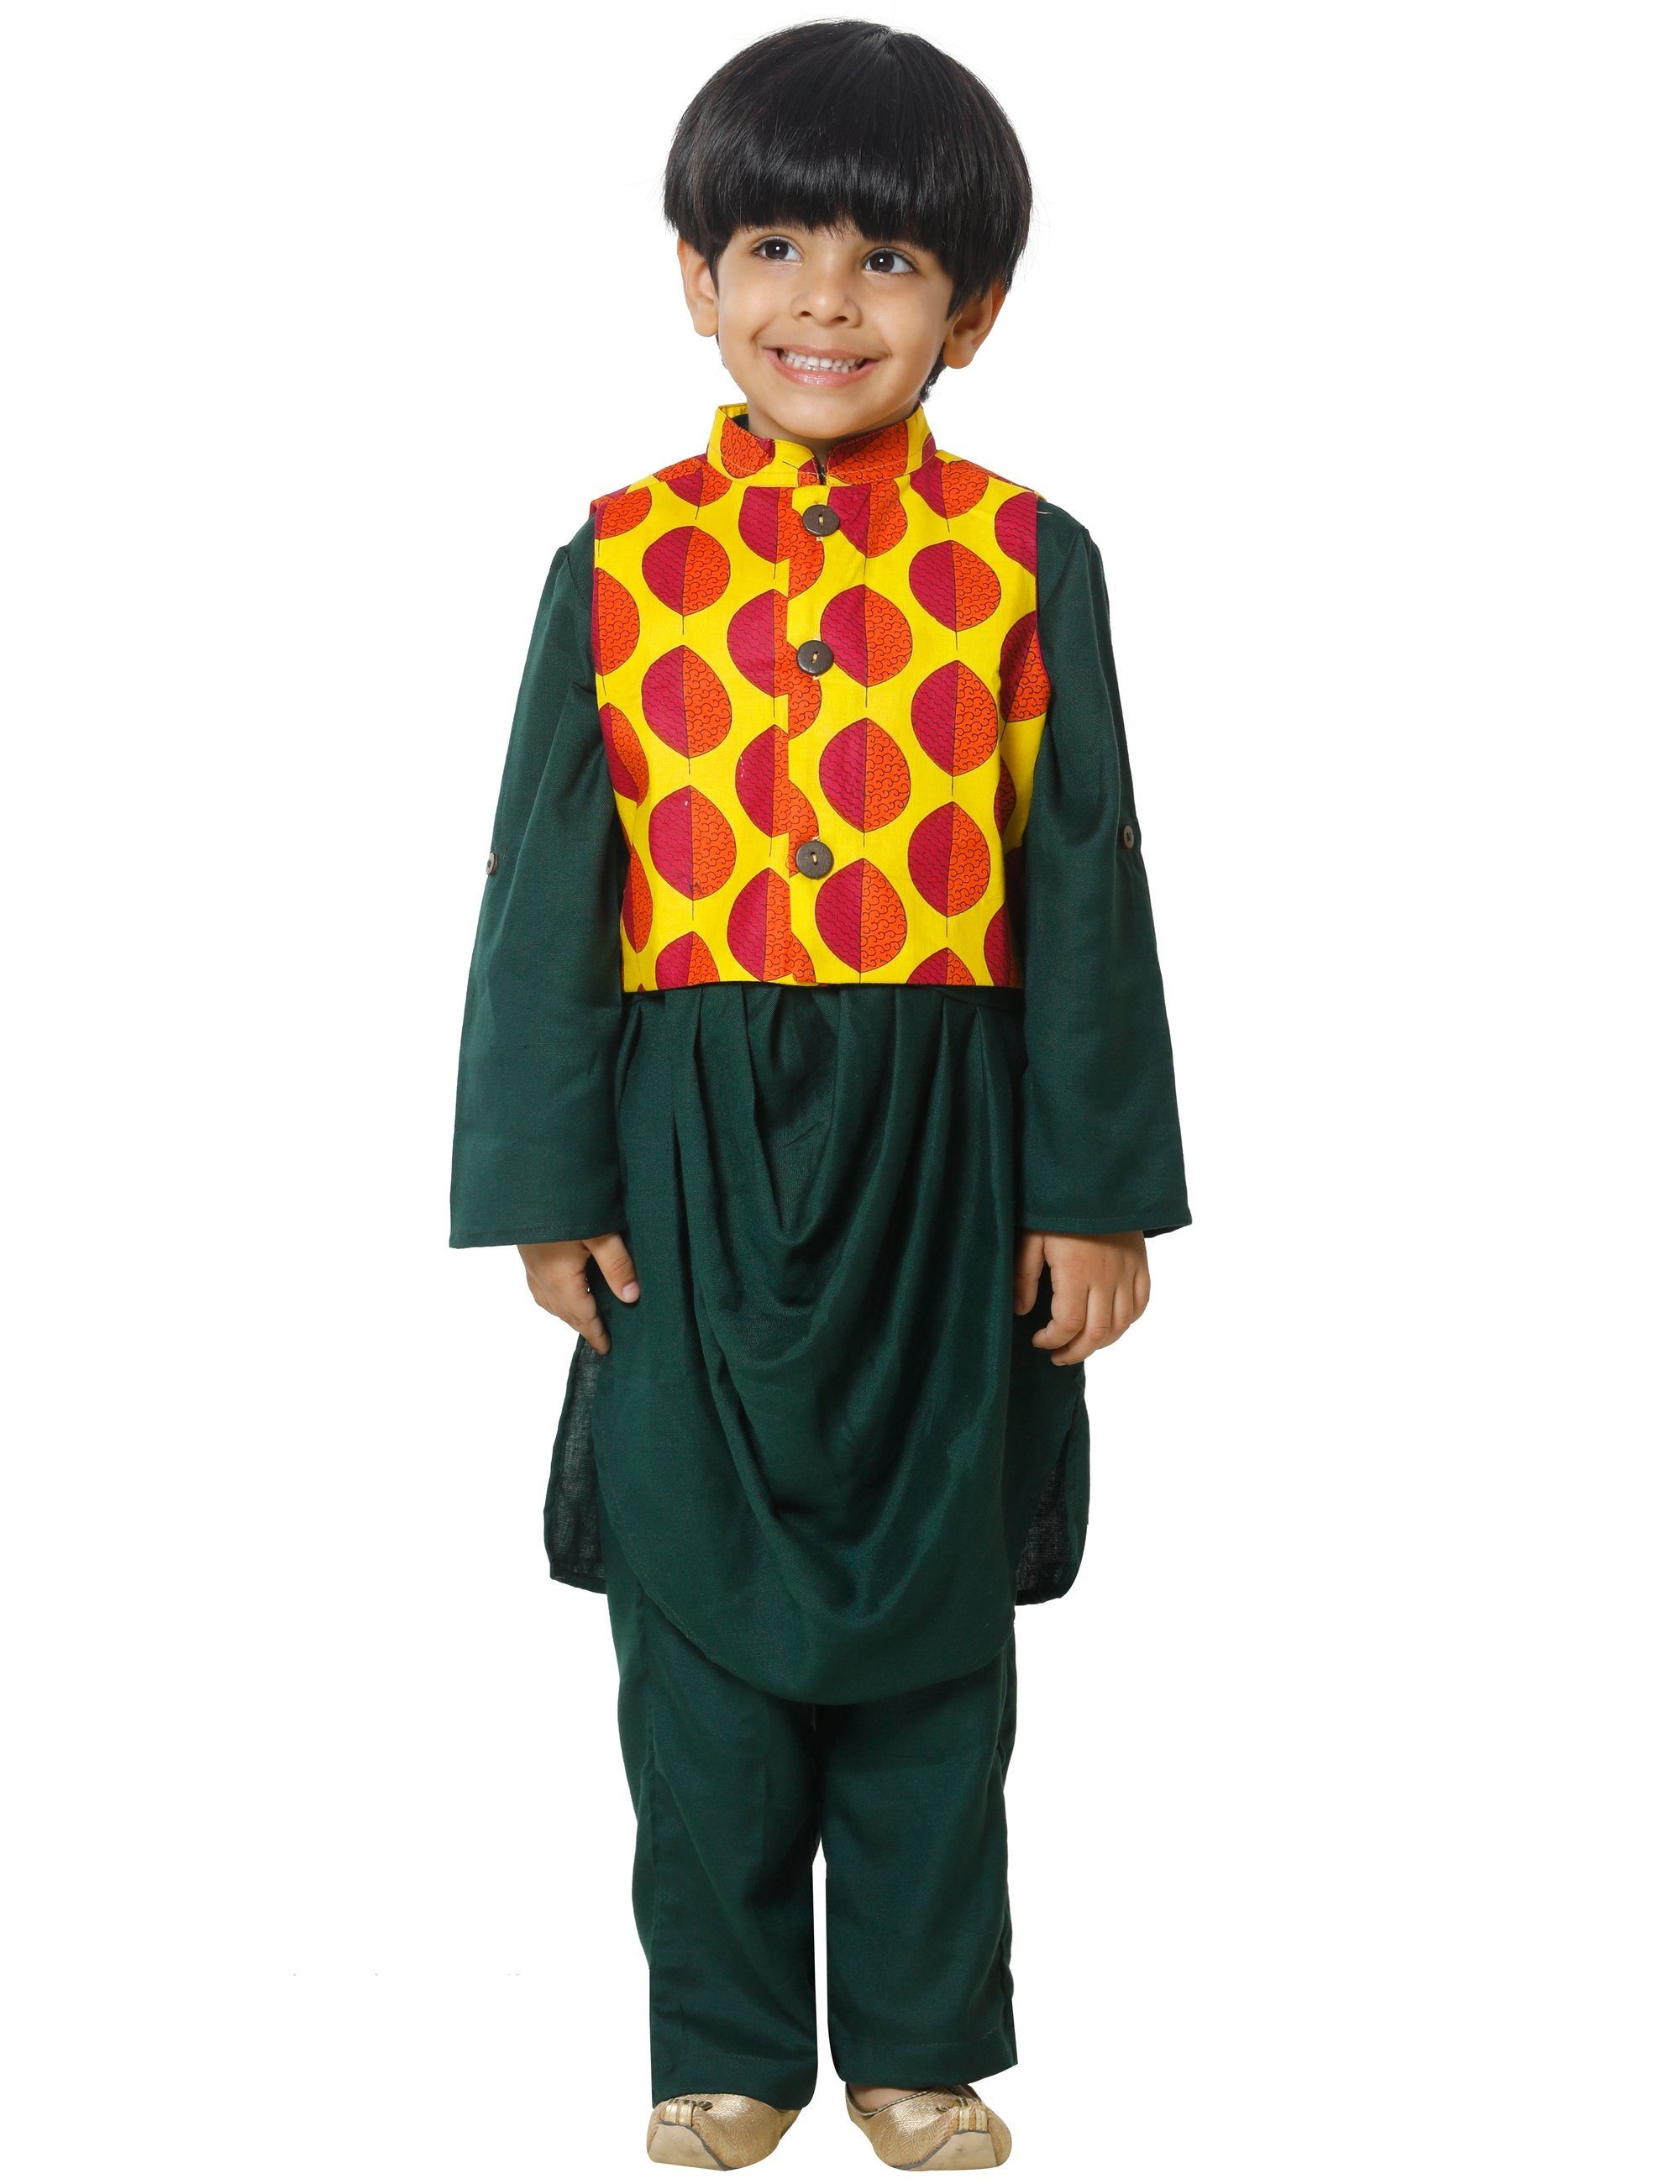 Yellow Jacket with Green Drape Kurta Pyjama Set